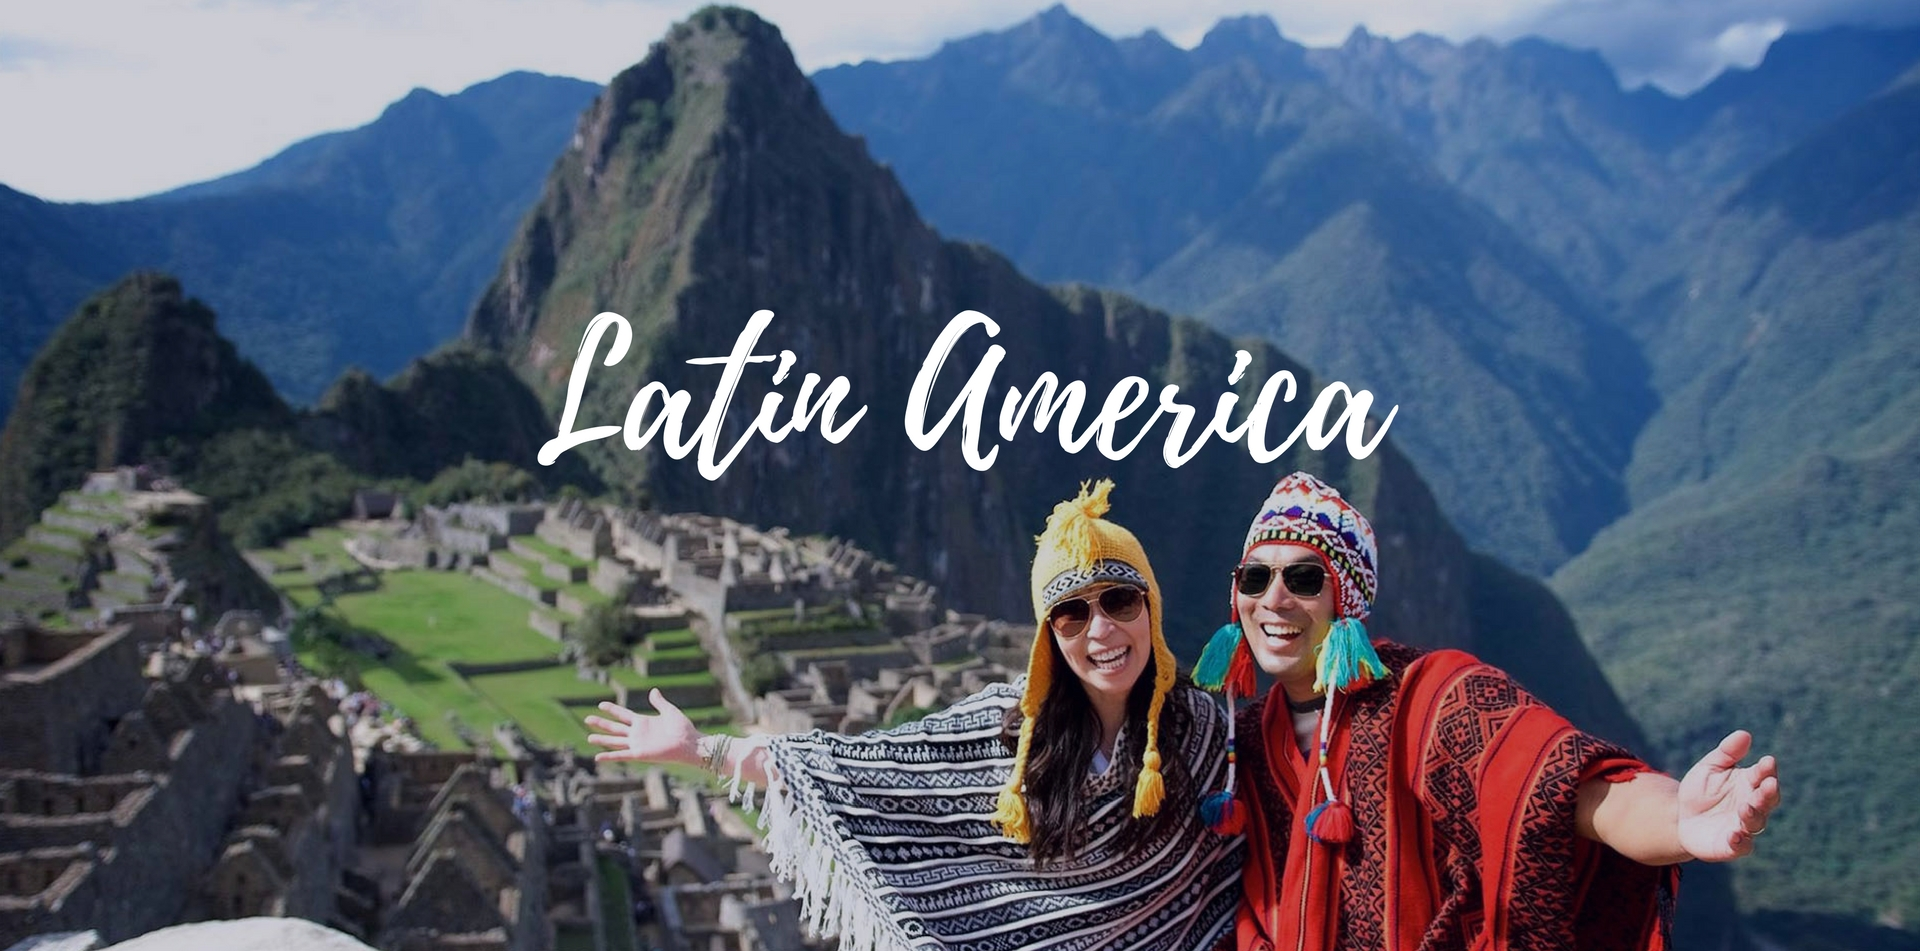 Latin America 	Peru scenic Andes Mountains spectacular Machu Picchu ancient Inca ruins - luxury vacation destinations